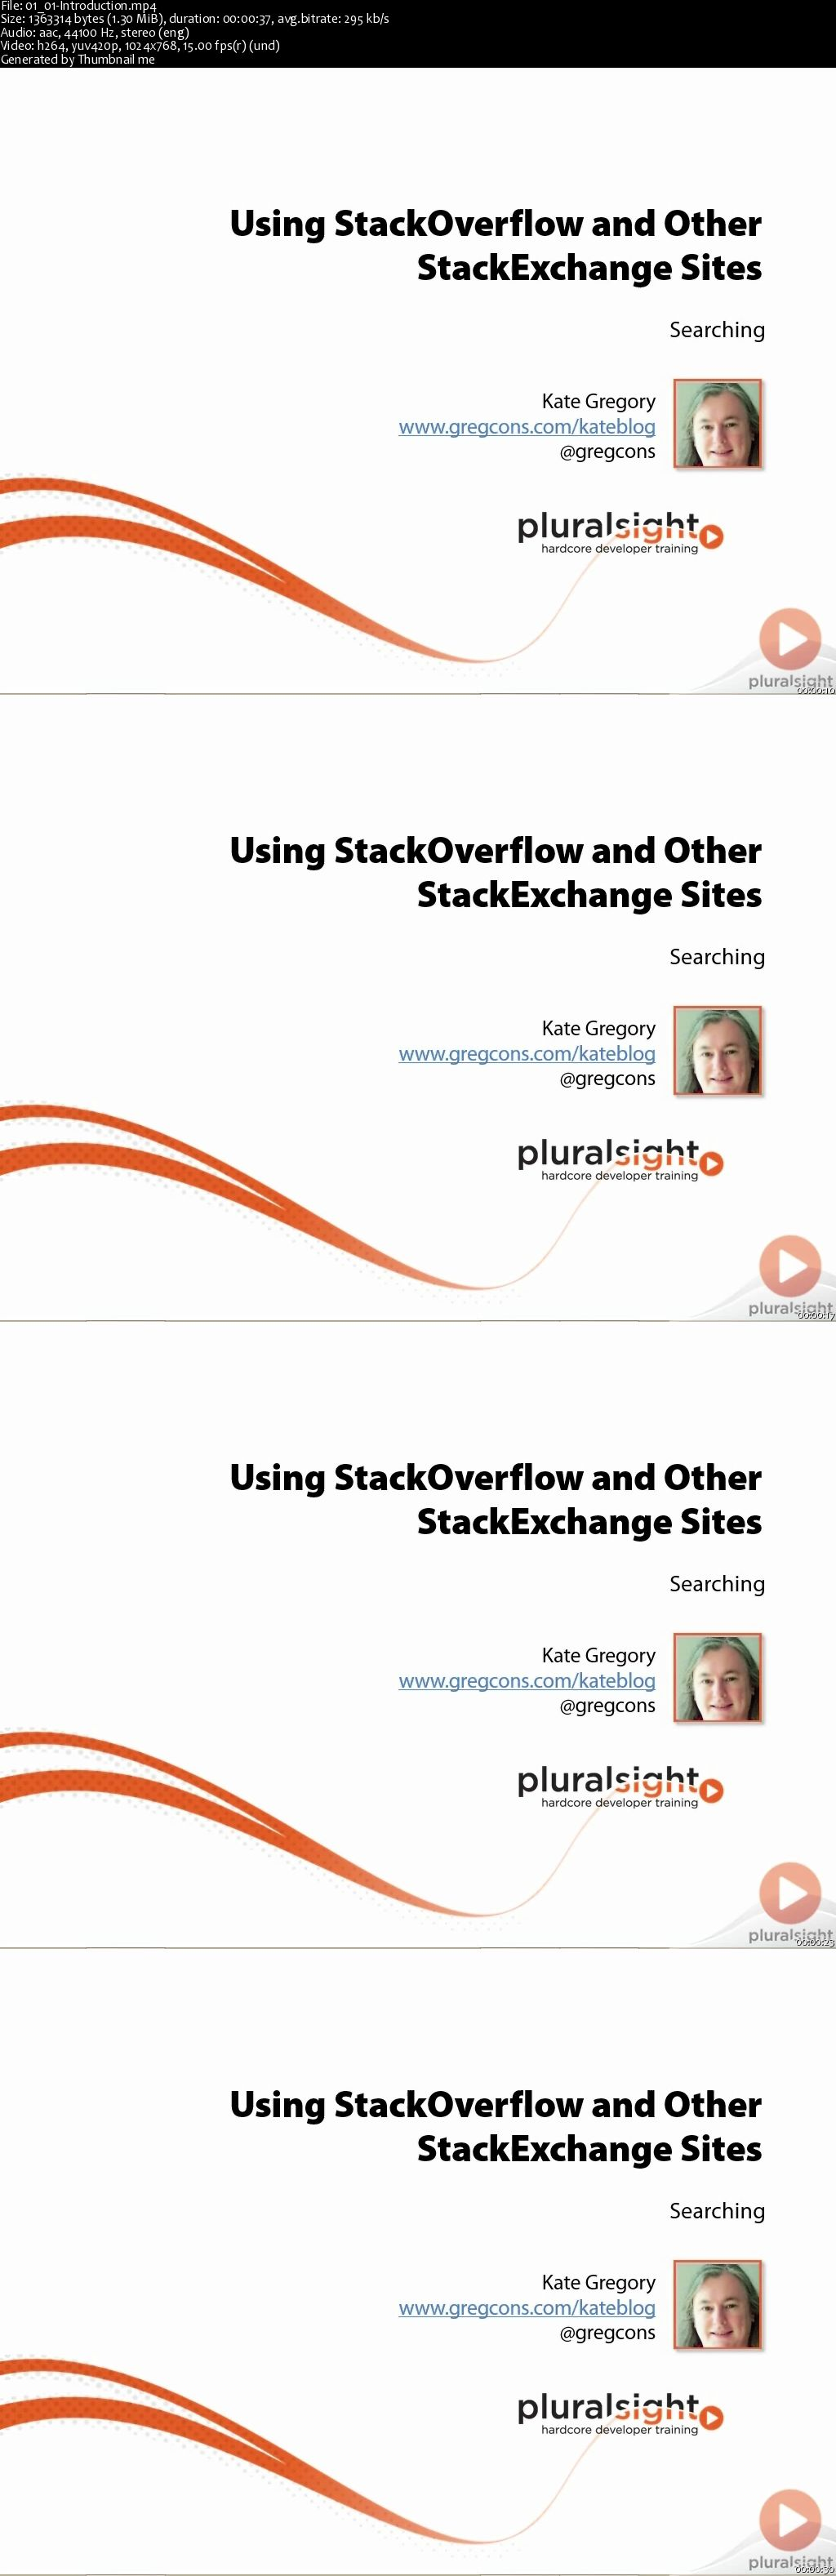 Using StackOverflow and Other StackExchange Sites